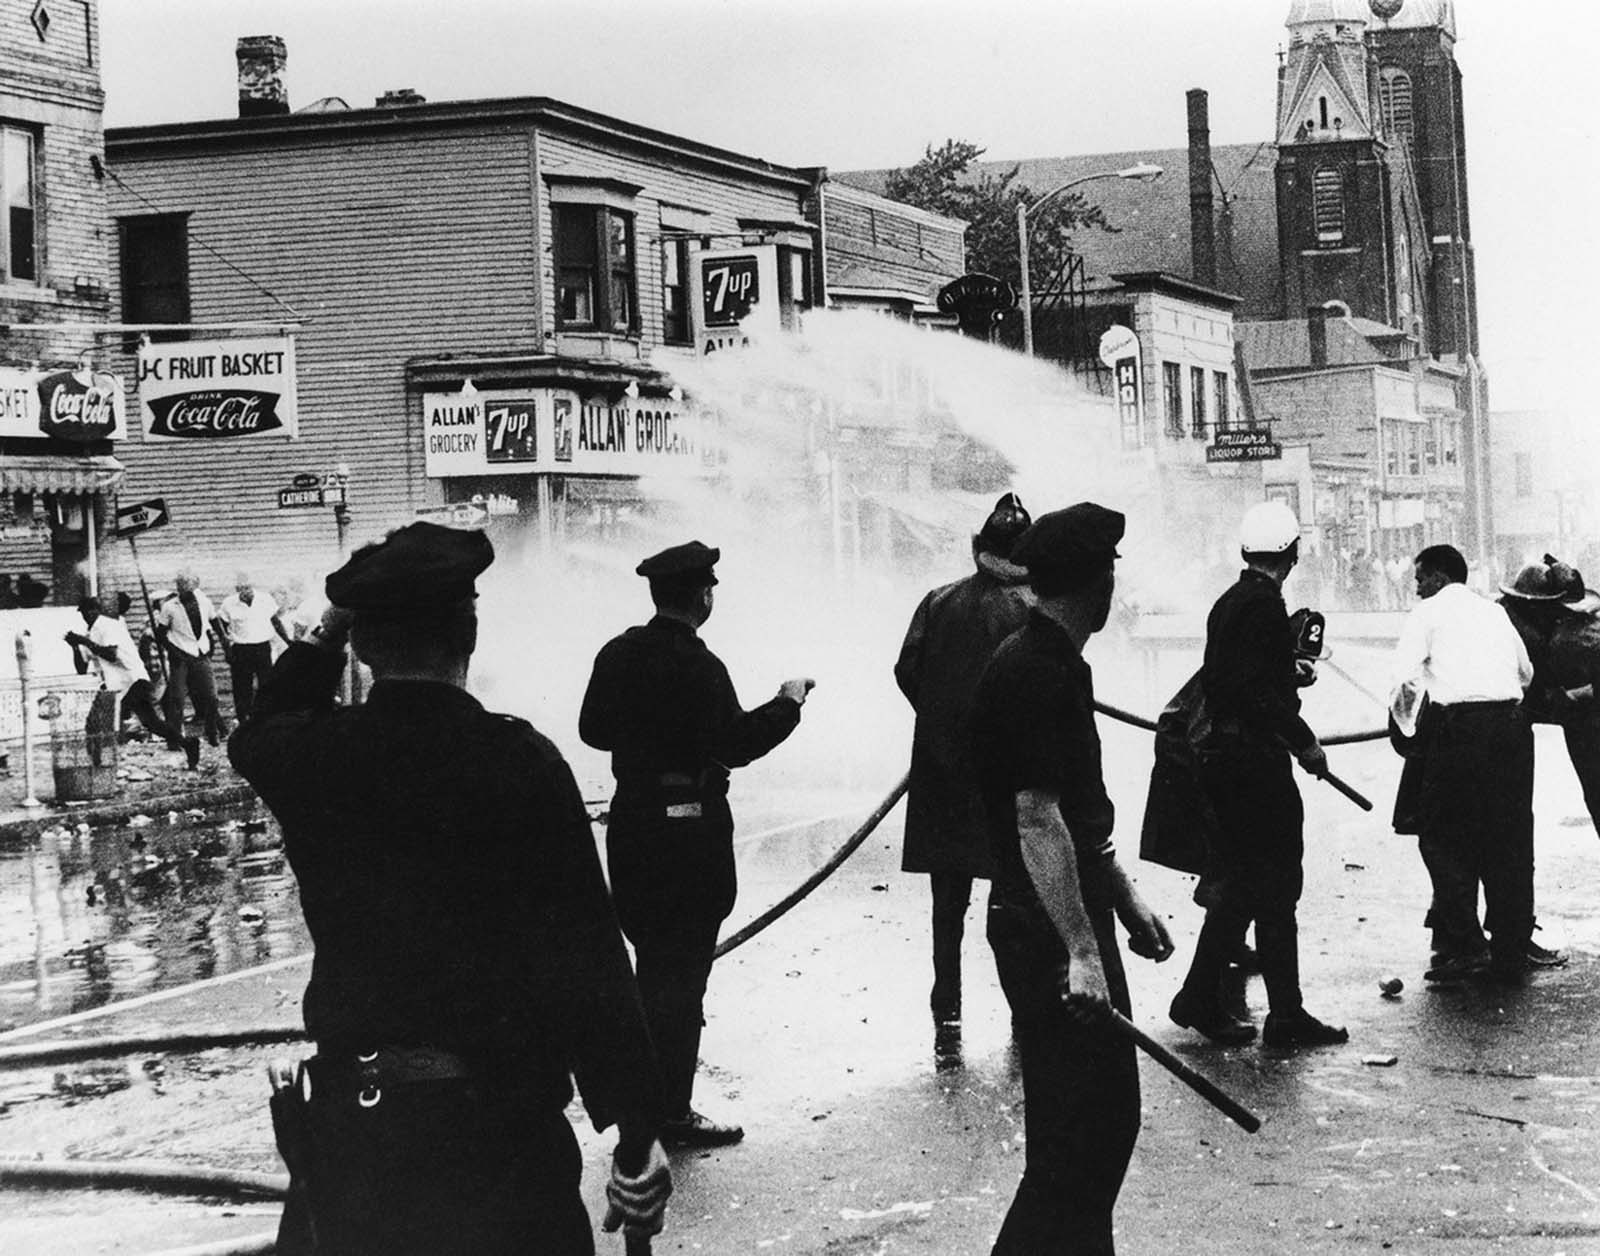 New York firemen, backed up by police, turn fire hoses on rioters in Rochester, New York, on July 25, 1964 in an effort to quell street disturbance. Set off by reports of police brutality during an arrest on July 24, the Rochester riot lasted several days.